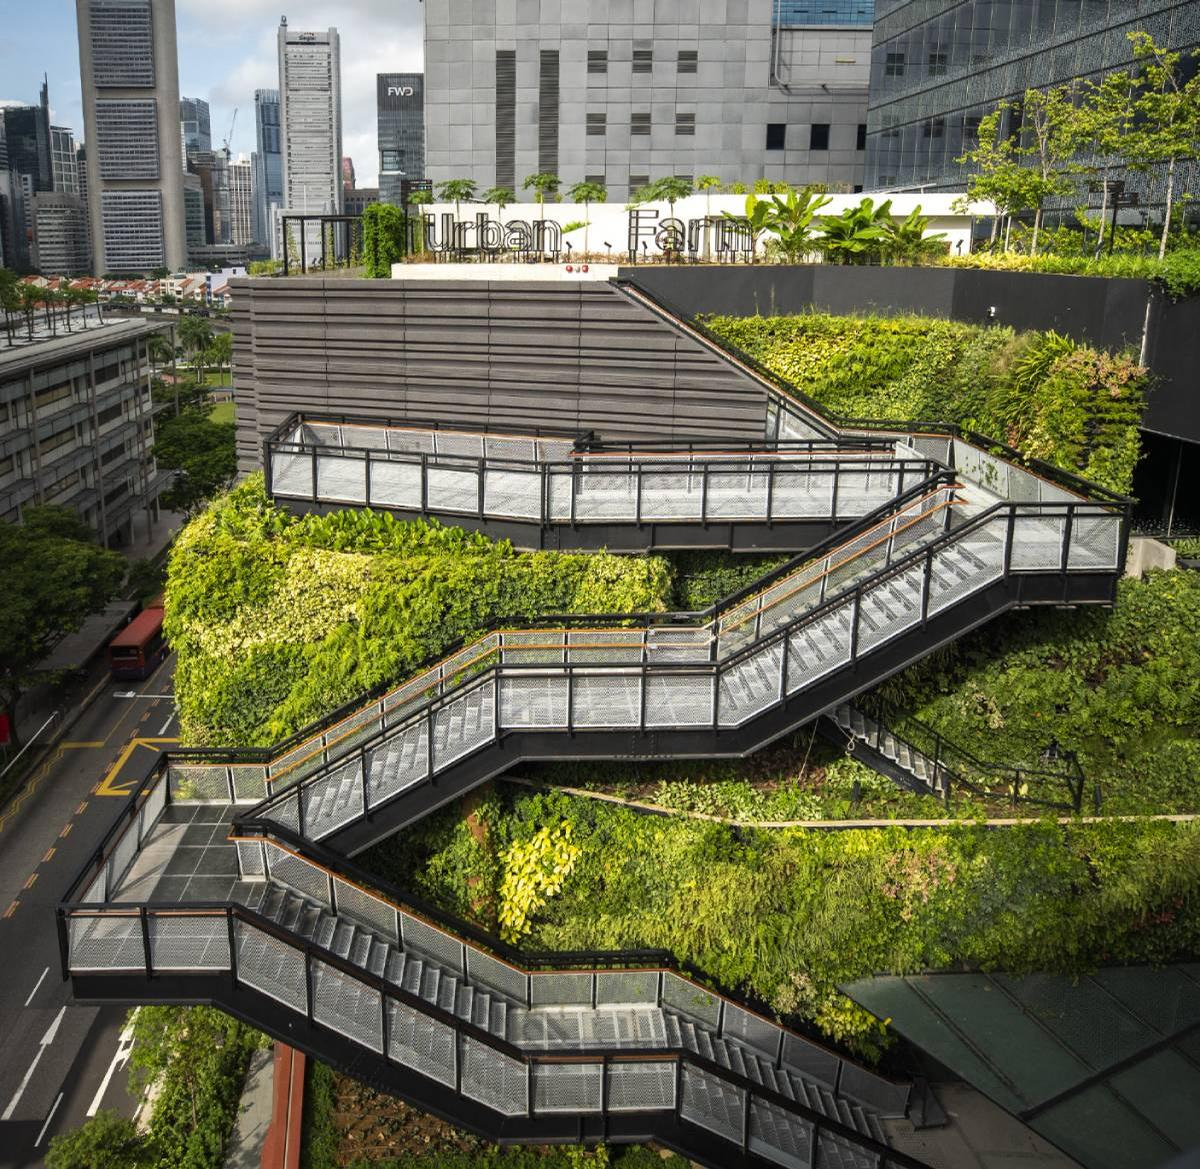 Additionally, the property has a rooftop garden with edible plants / Capitaland